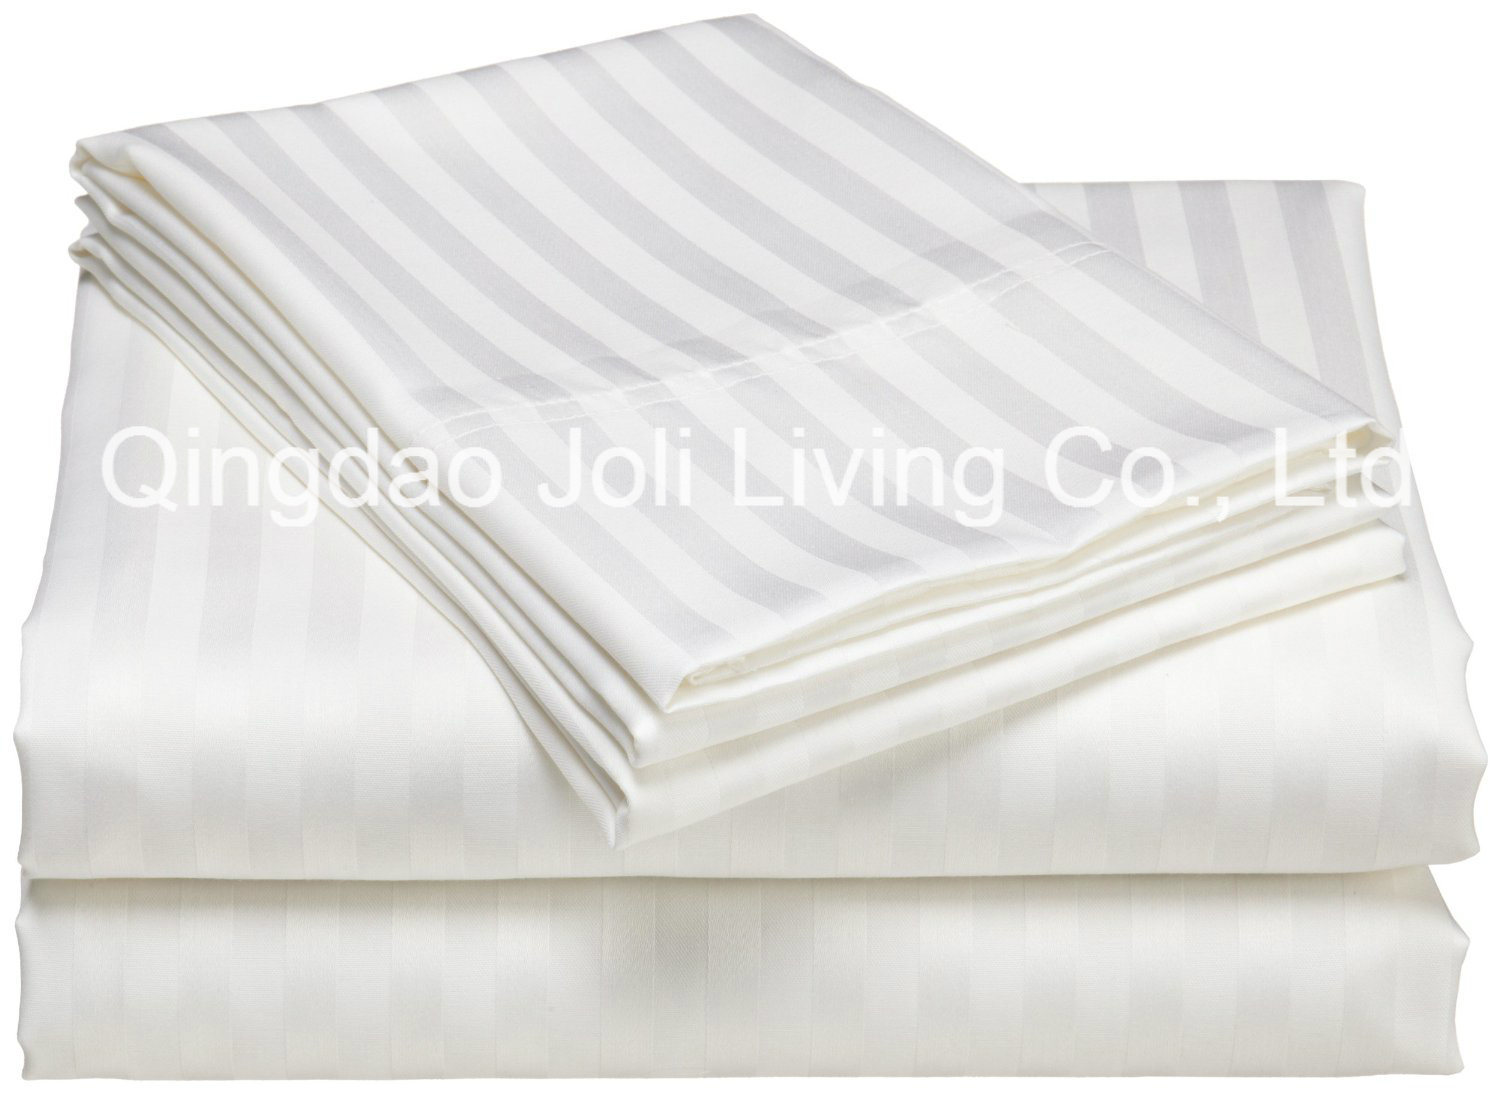 China 1cm Satin Sripe Hotel Bedding Sets/Striped Hotel Bed Sheets   China  Striped Bedding Sets, Hotel Striped Bed Sheets